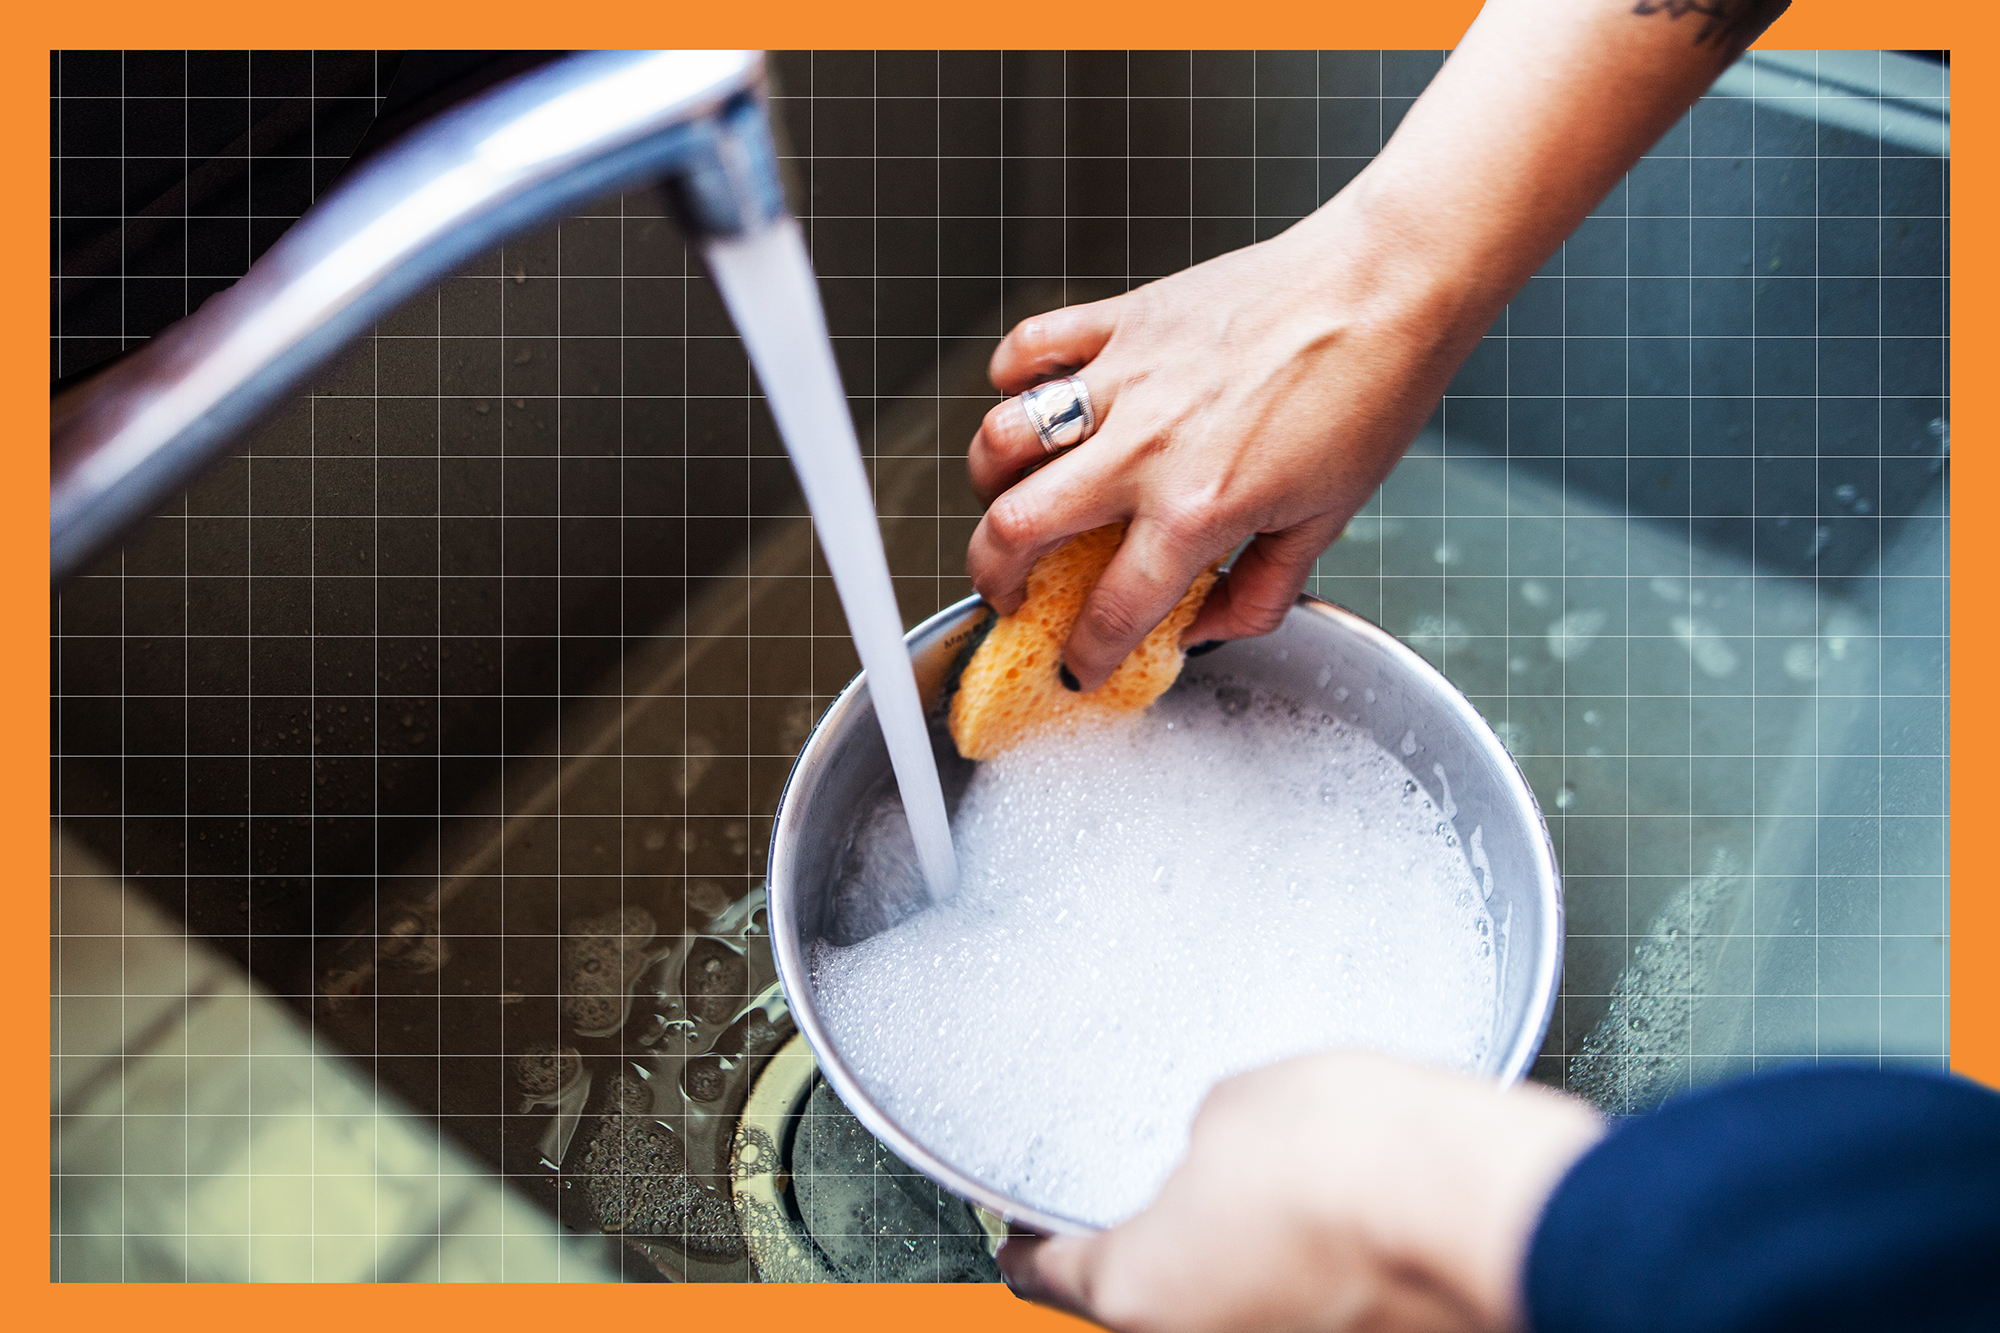 woman's hands washing a pot in the sink